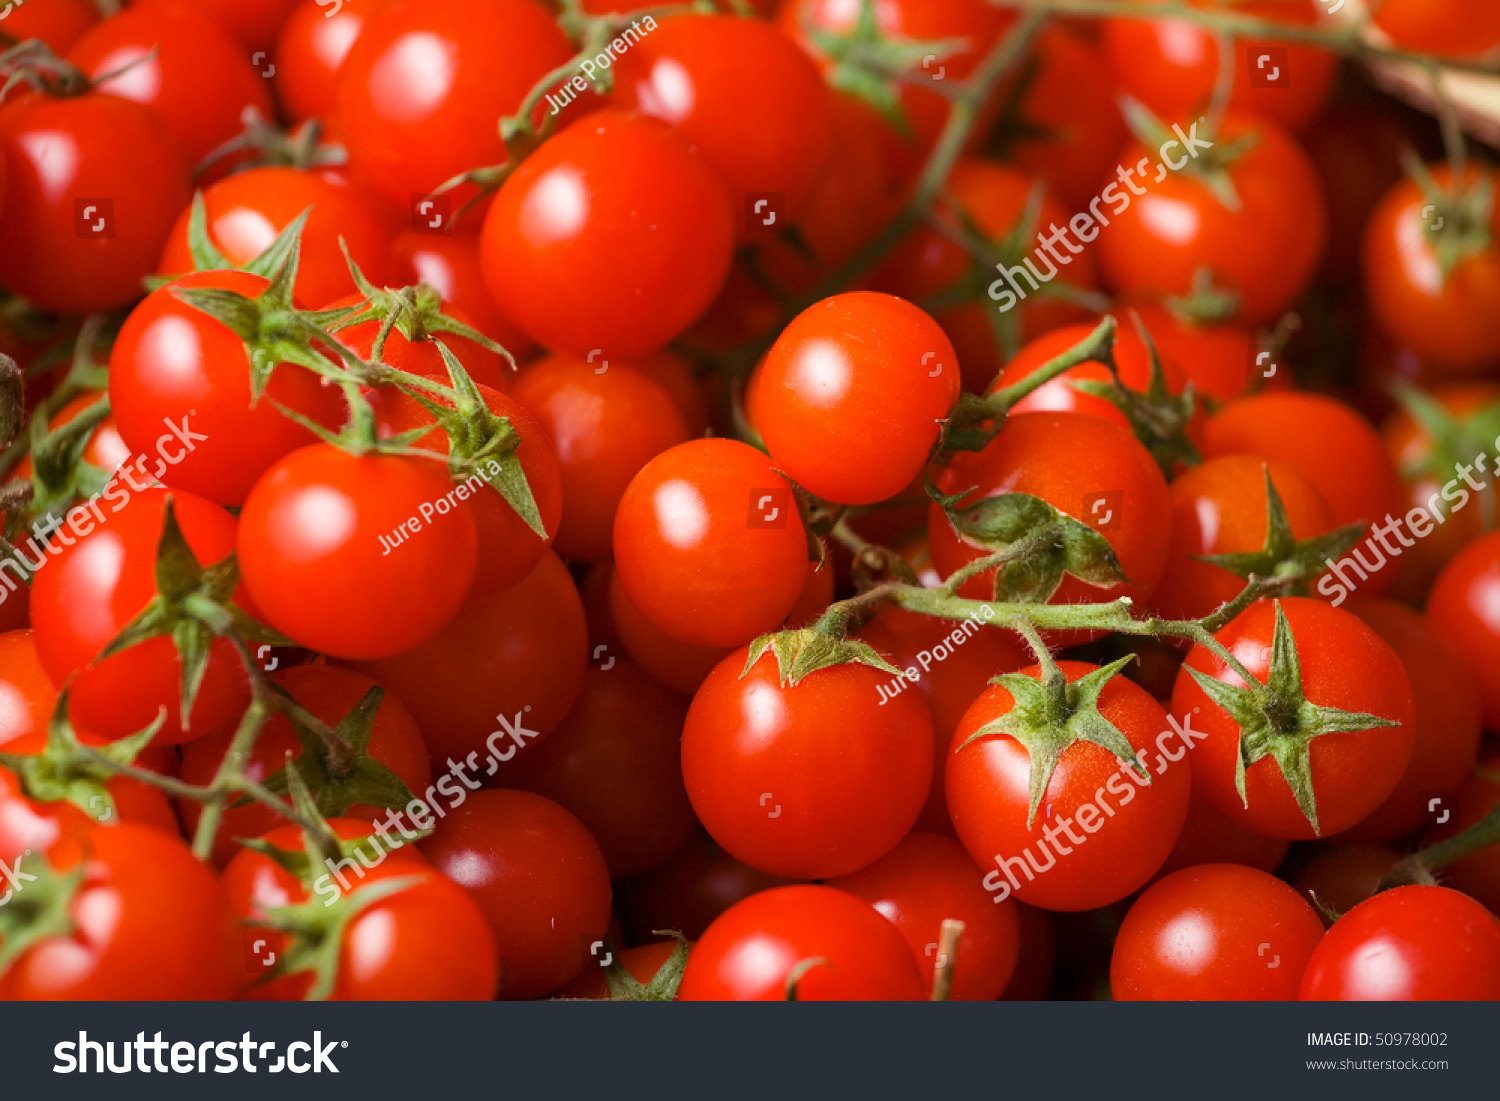 Fresh And Tasty Cherry Tomato In Grocery Store. Stock Photo 50978002 : Shutterstock